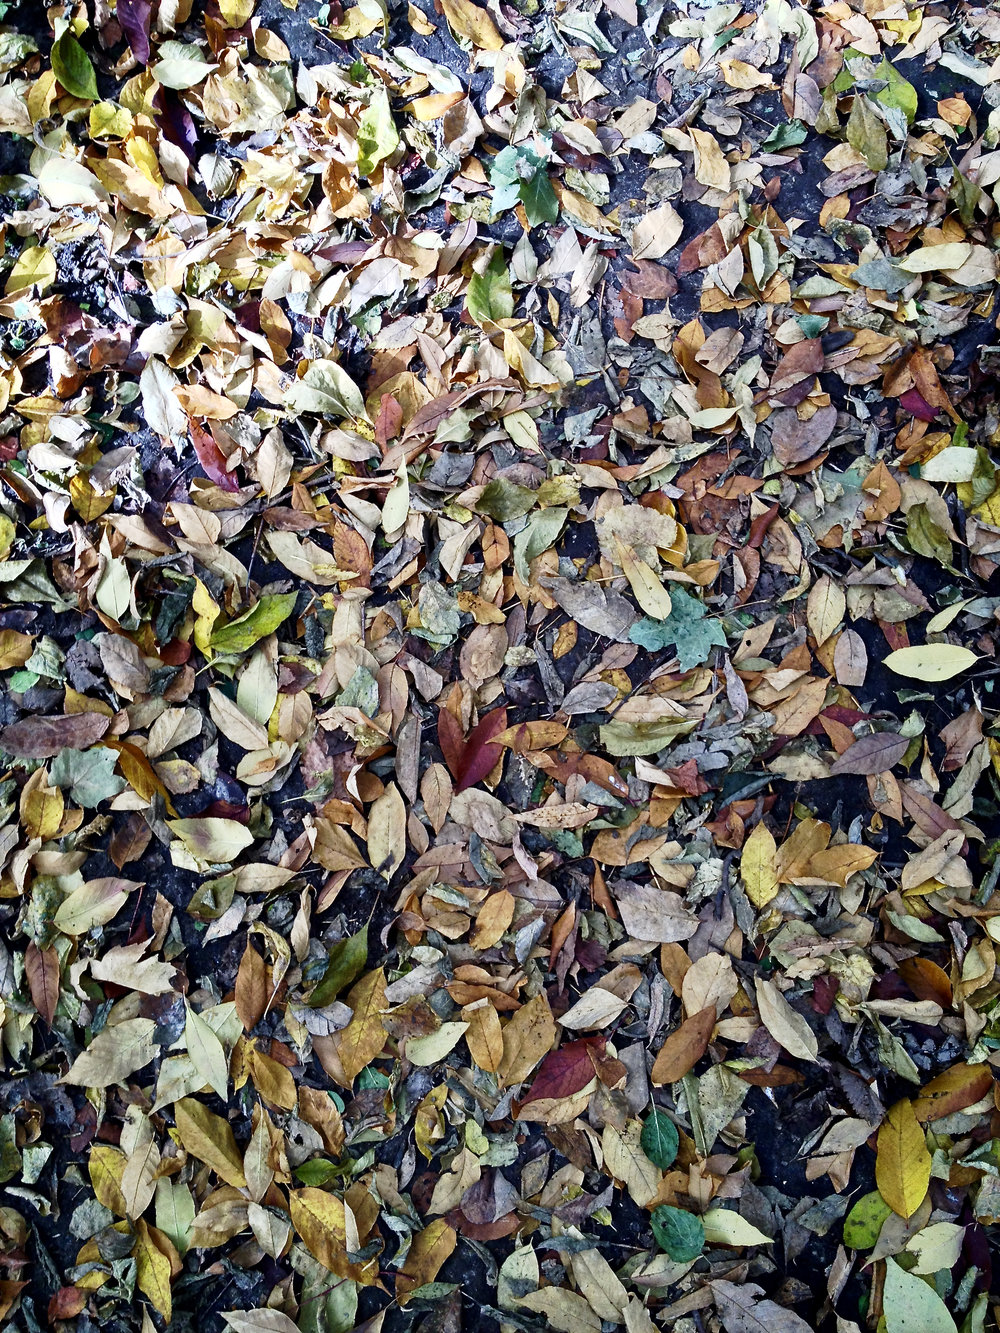 Carpet of Leaves. Picnic Point. Madison, Wisconsin. October 2014. © William D. Walker